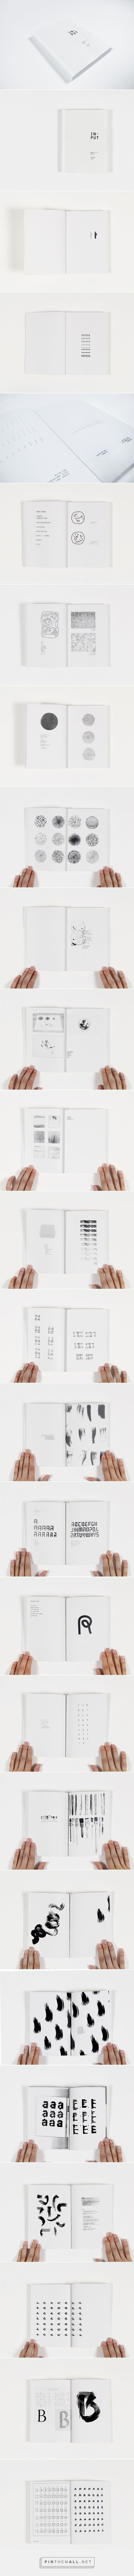 Project / Cross-cultural Calligraphy by Shimin Chen